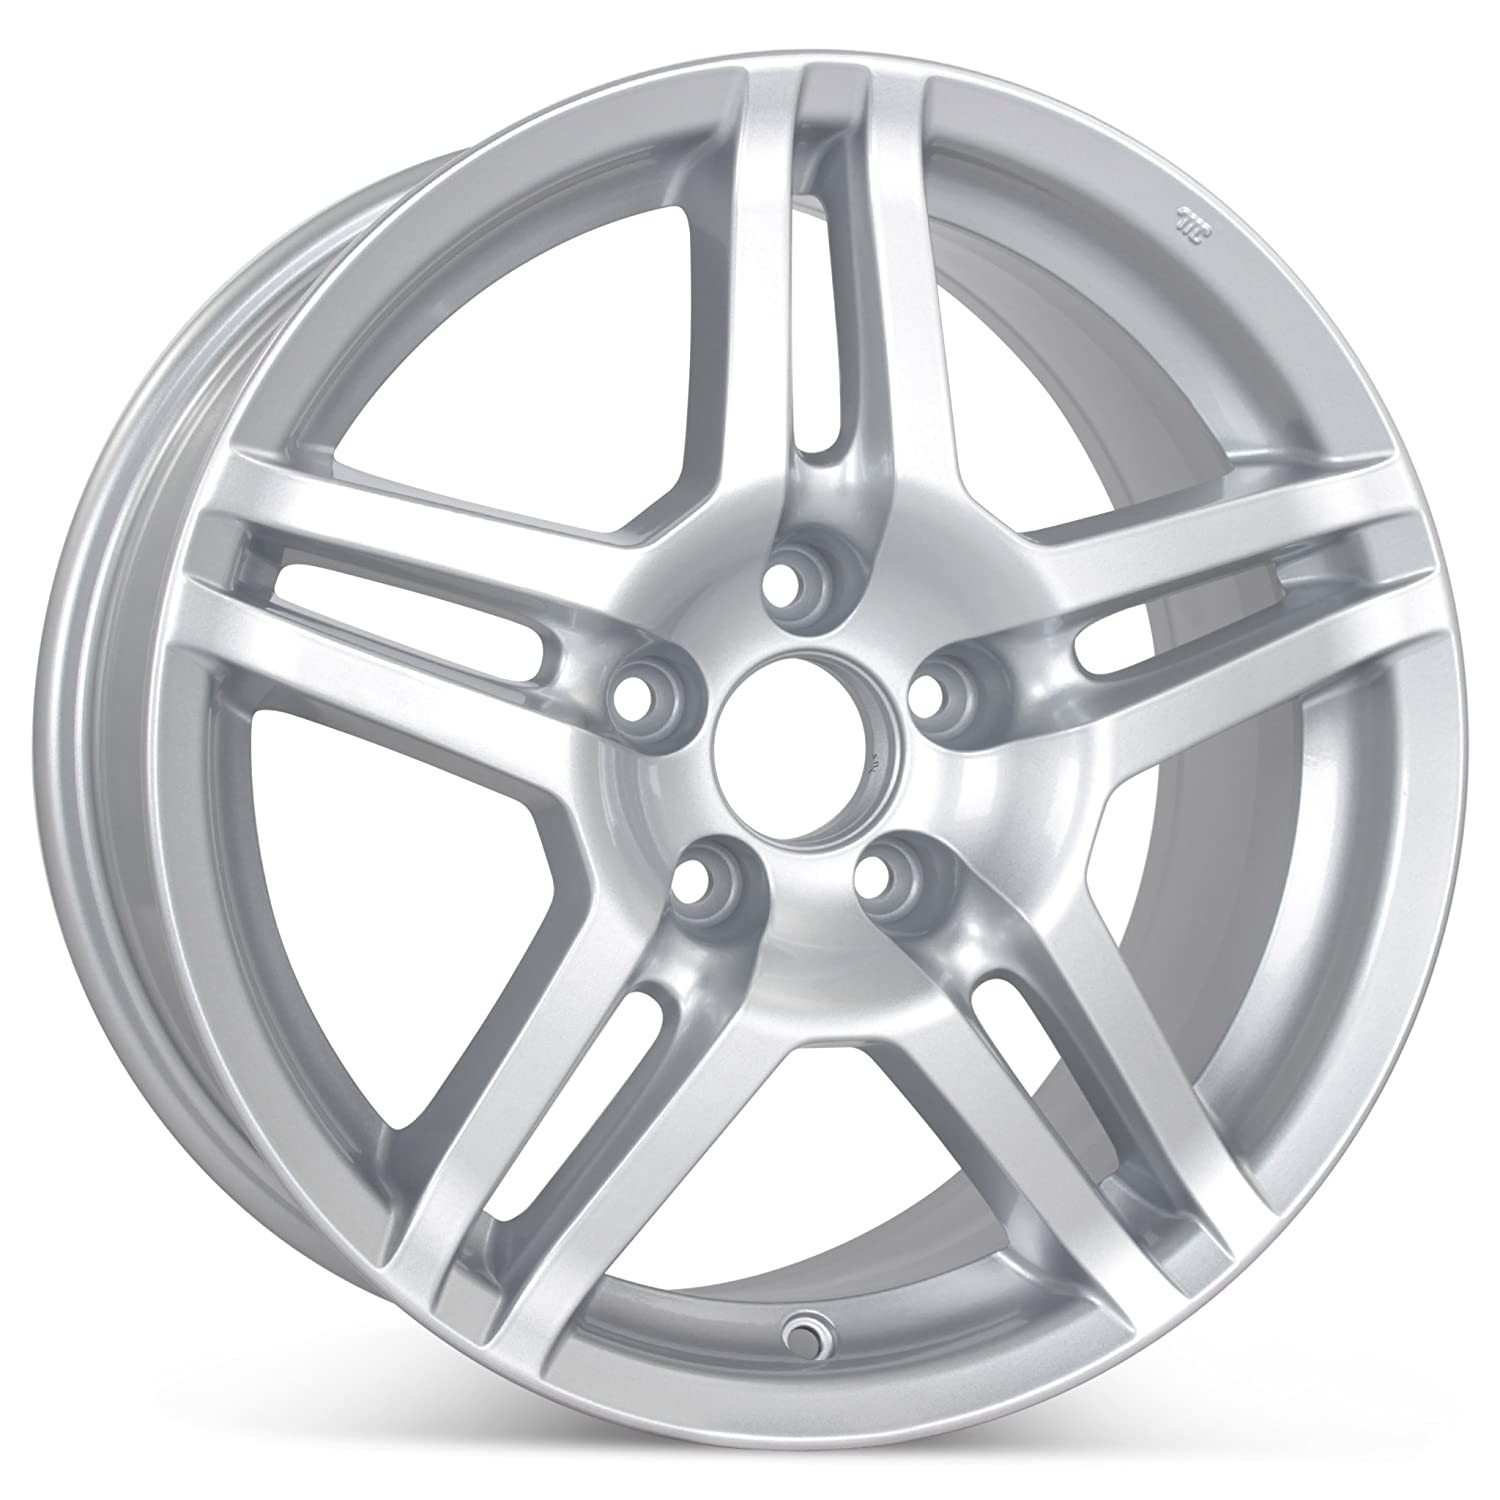 Acura Tl Wheels >> New 17 X 8 Alloy Replacement Wheel For Acura Tl 2007 2008 Rim 71762